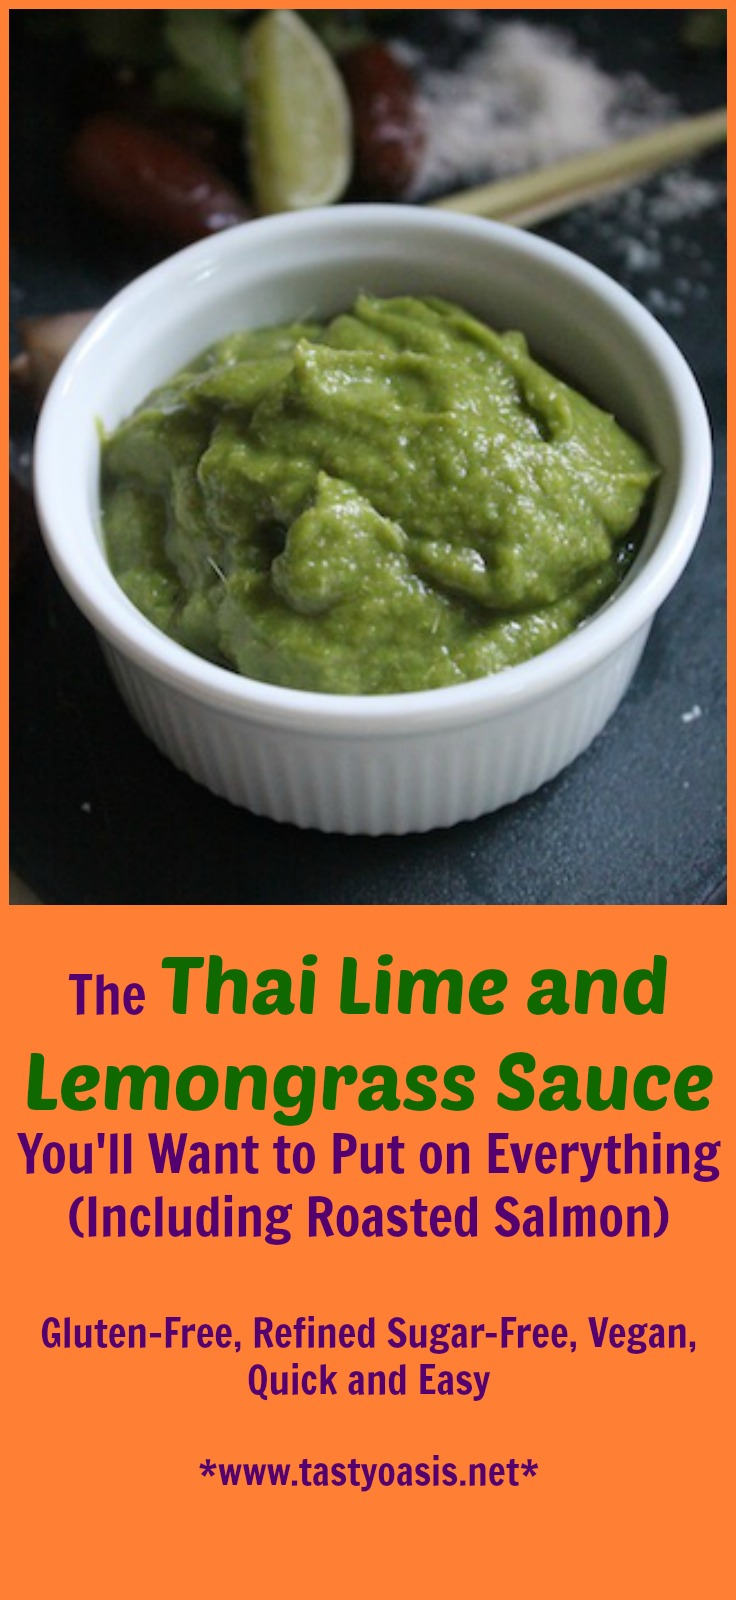 This Thai Lime and Lemongrass sauce is quick, easy and healthy, and on Roasted Salmon it makes for a main course that has a bright balanced flavor. Using dates instead of sugar, you've got a slightly sweet sauce that pops from citrus, with a touch of herbs and heat to round it out. With dinner in under 30 minutes, you won't miss ordering takeout. | www.tastyoasis.net